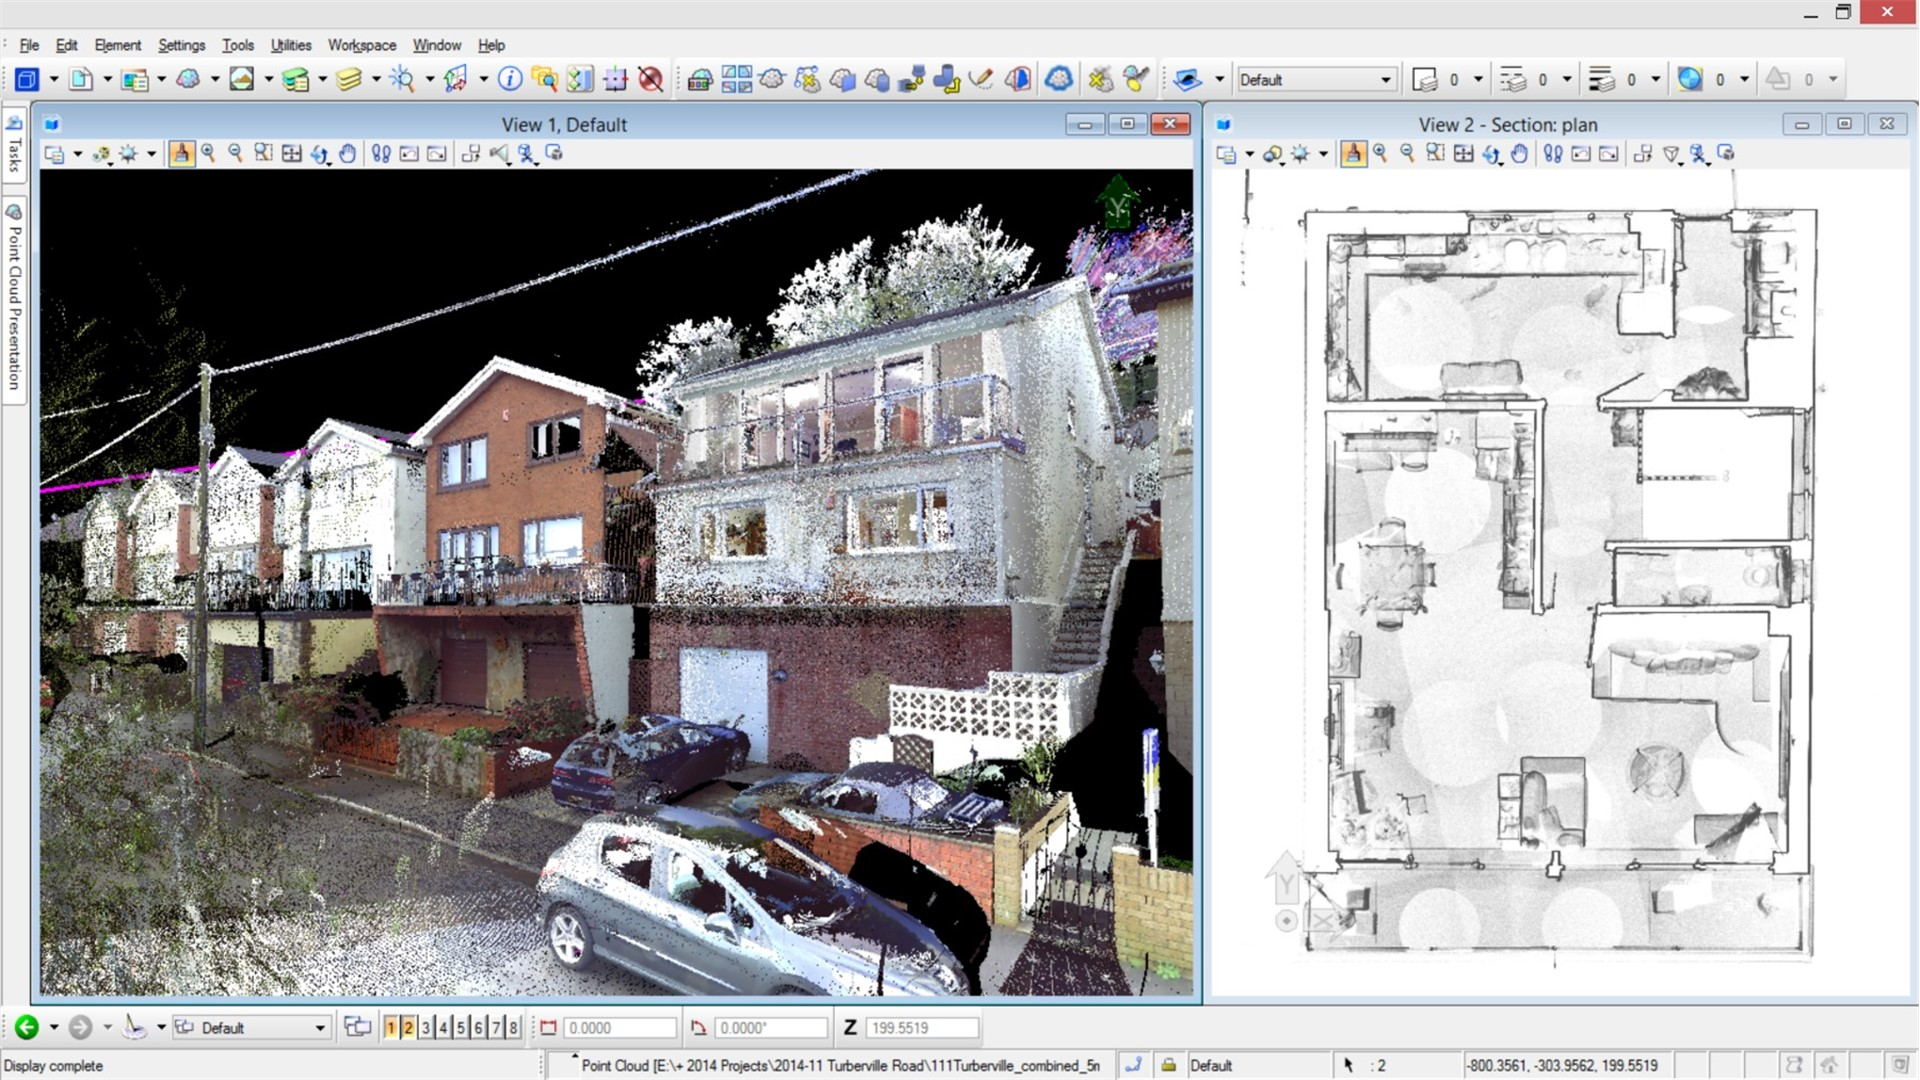 Point Cloud Visualization App - Bentley Pointools View